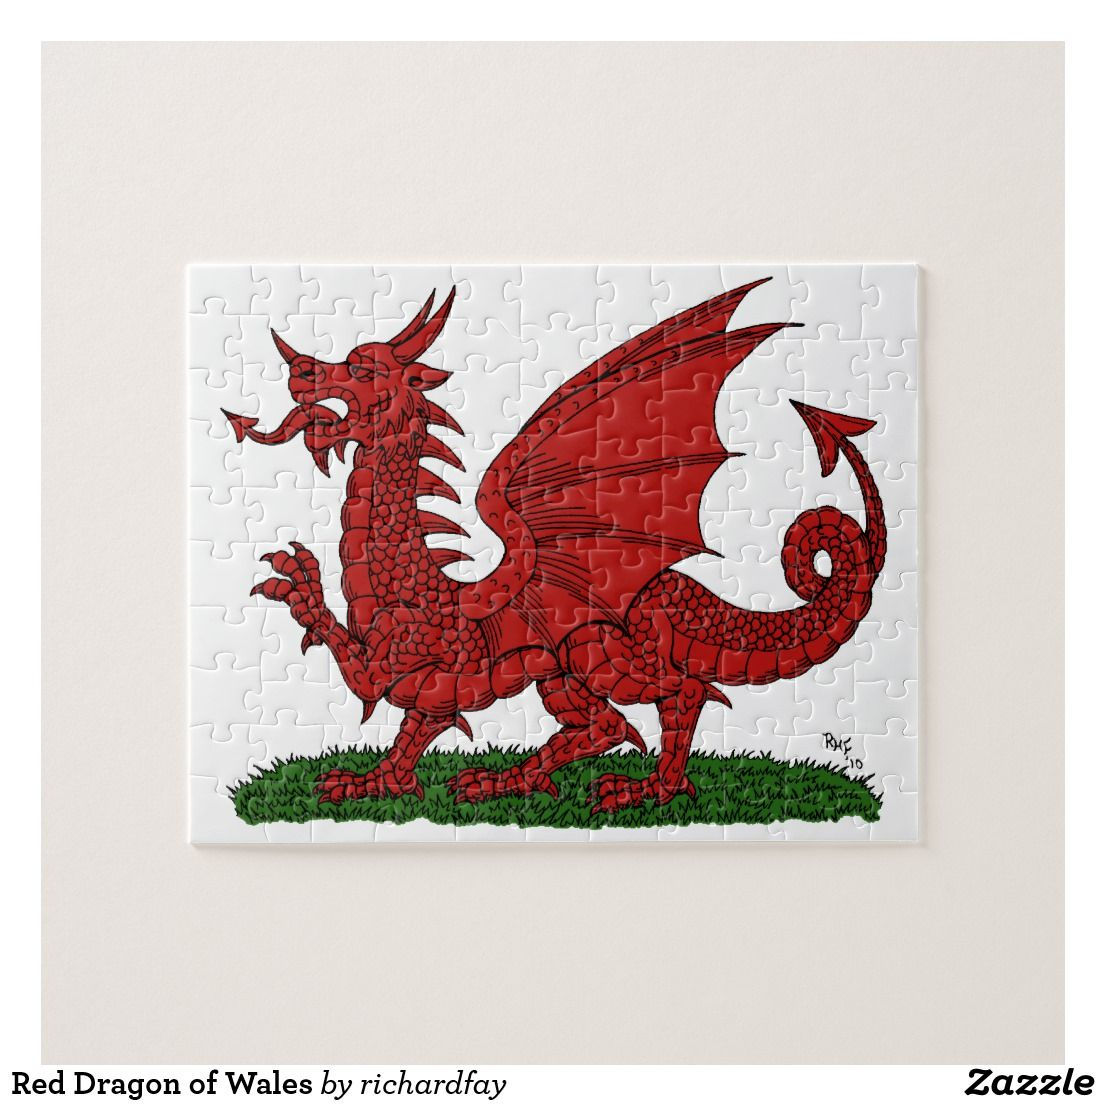 Red Dragon Of Wales Jigsaw Puzzle Zazzle Com In 2021 Red Dragon Jigsaw Puzzles Custom Puzzle [ 1106 x 1106 Pixel ]